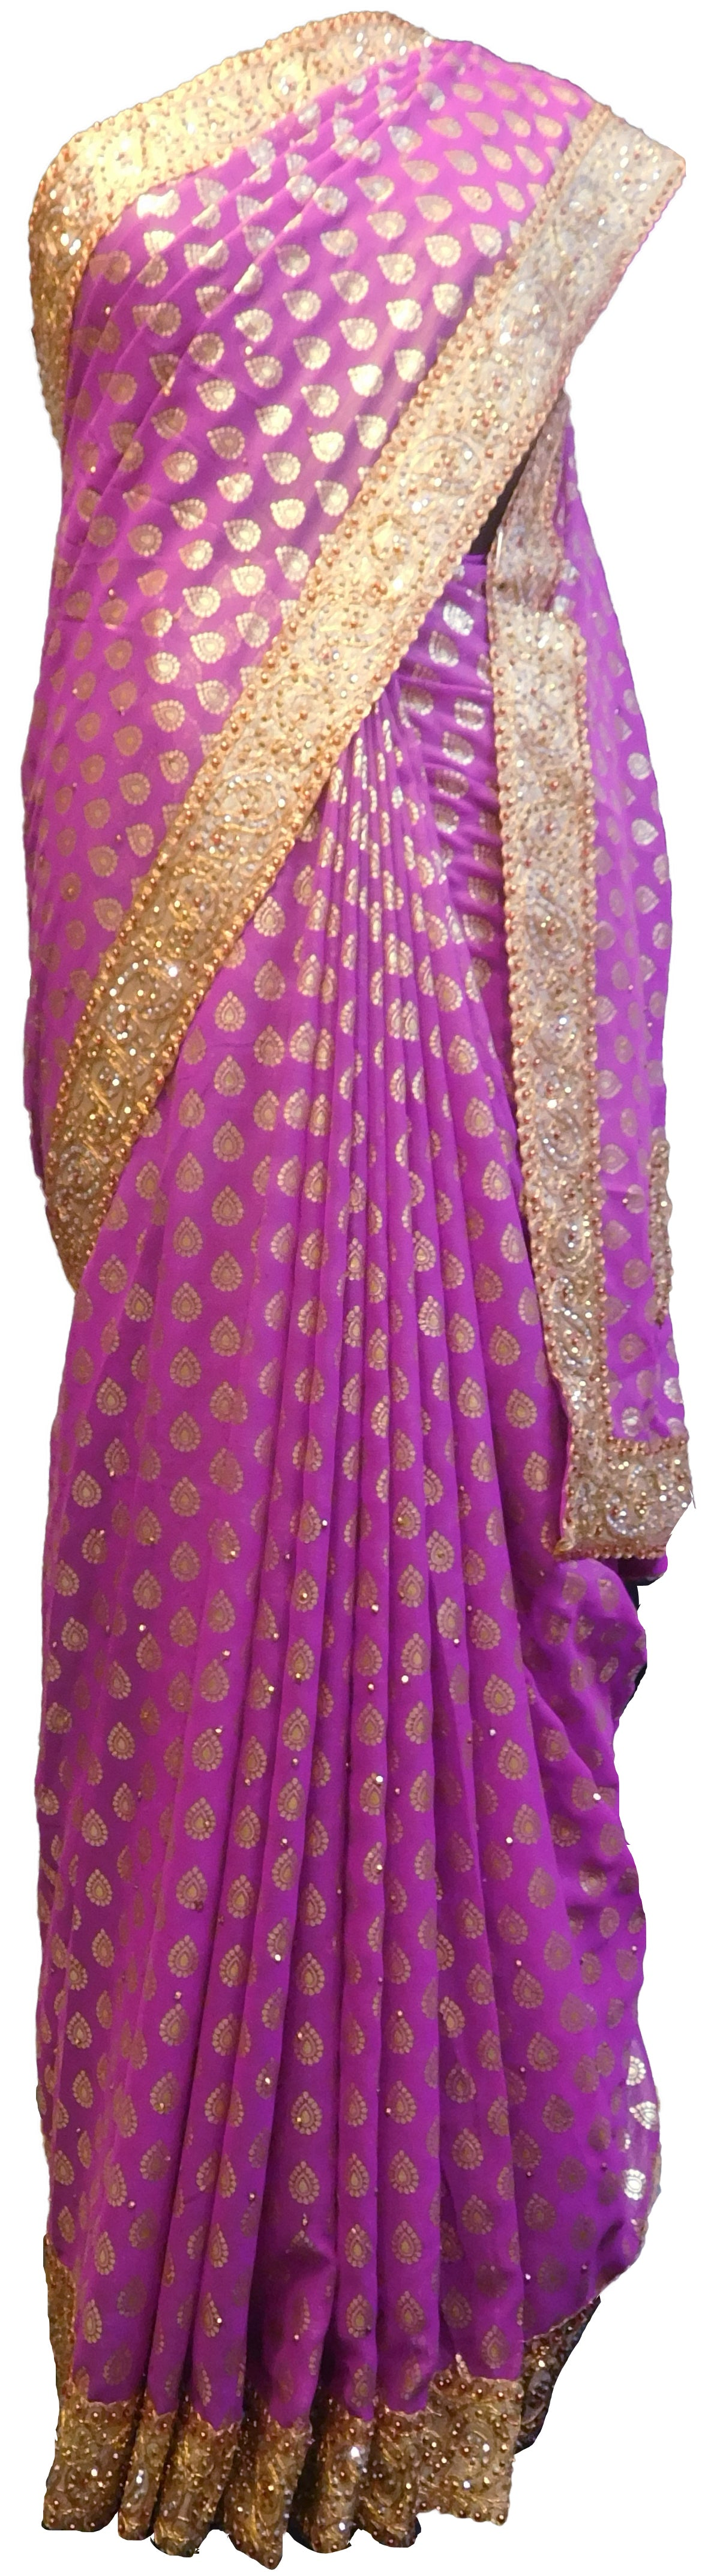 SMSAREE Violet Designer Wedding Partywear Georgette Stone & Zari Hand Embroidery Work Bridal Saree Sari With Blouse Piece E536